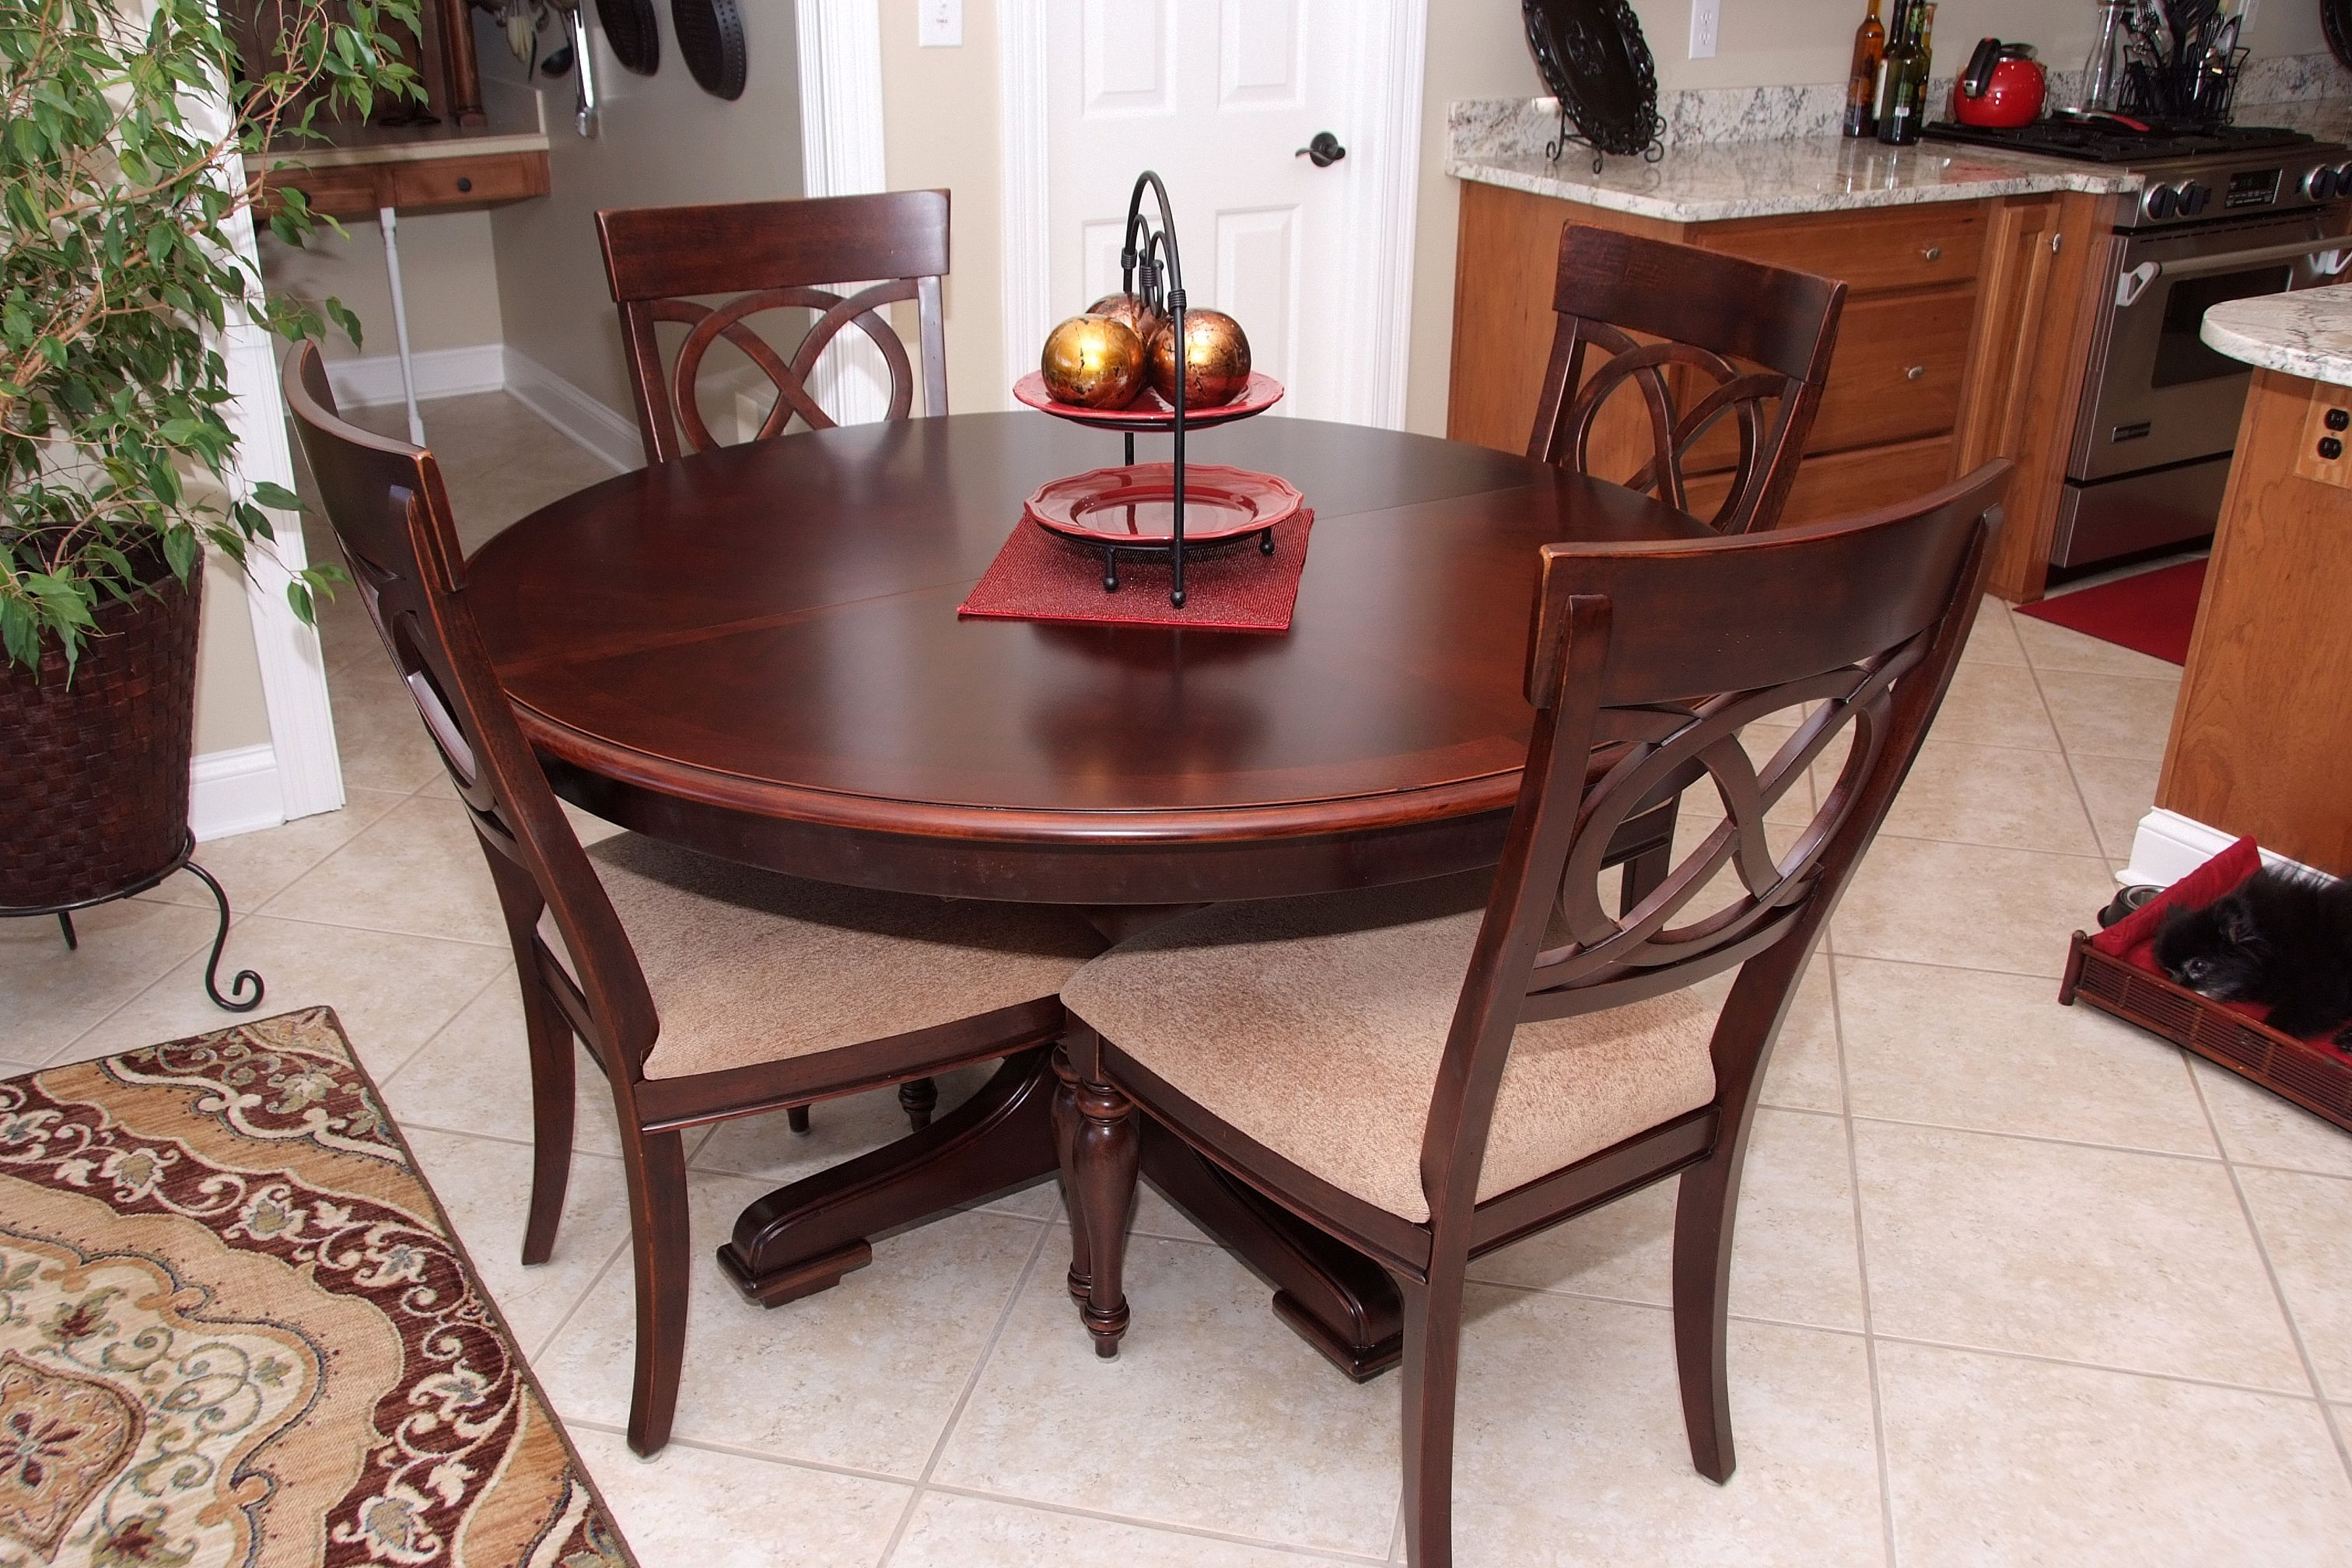 Savings of 20-60% add to the luxury of this beautiful dining room set.  Call for your free savings seminar, 317472-9817